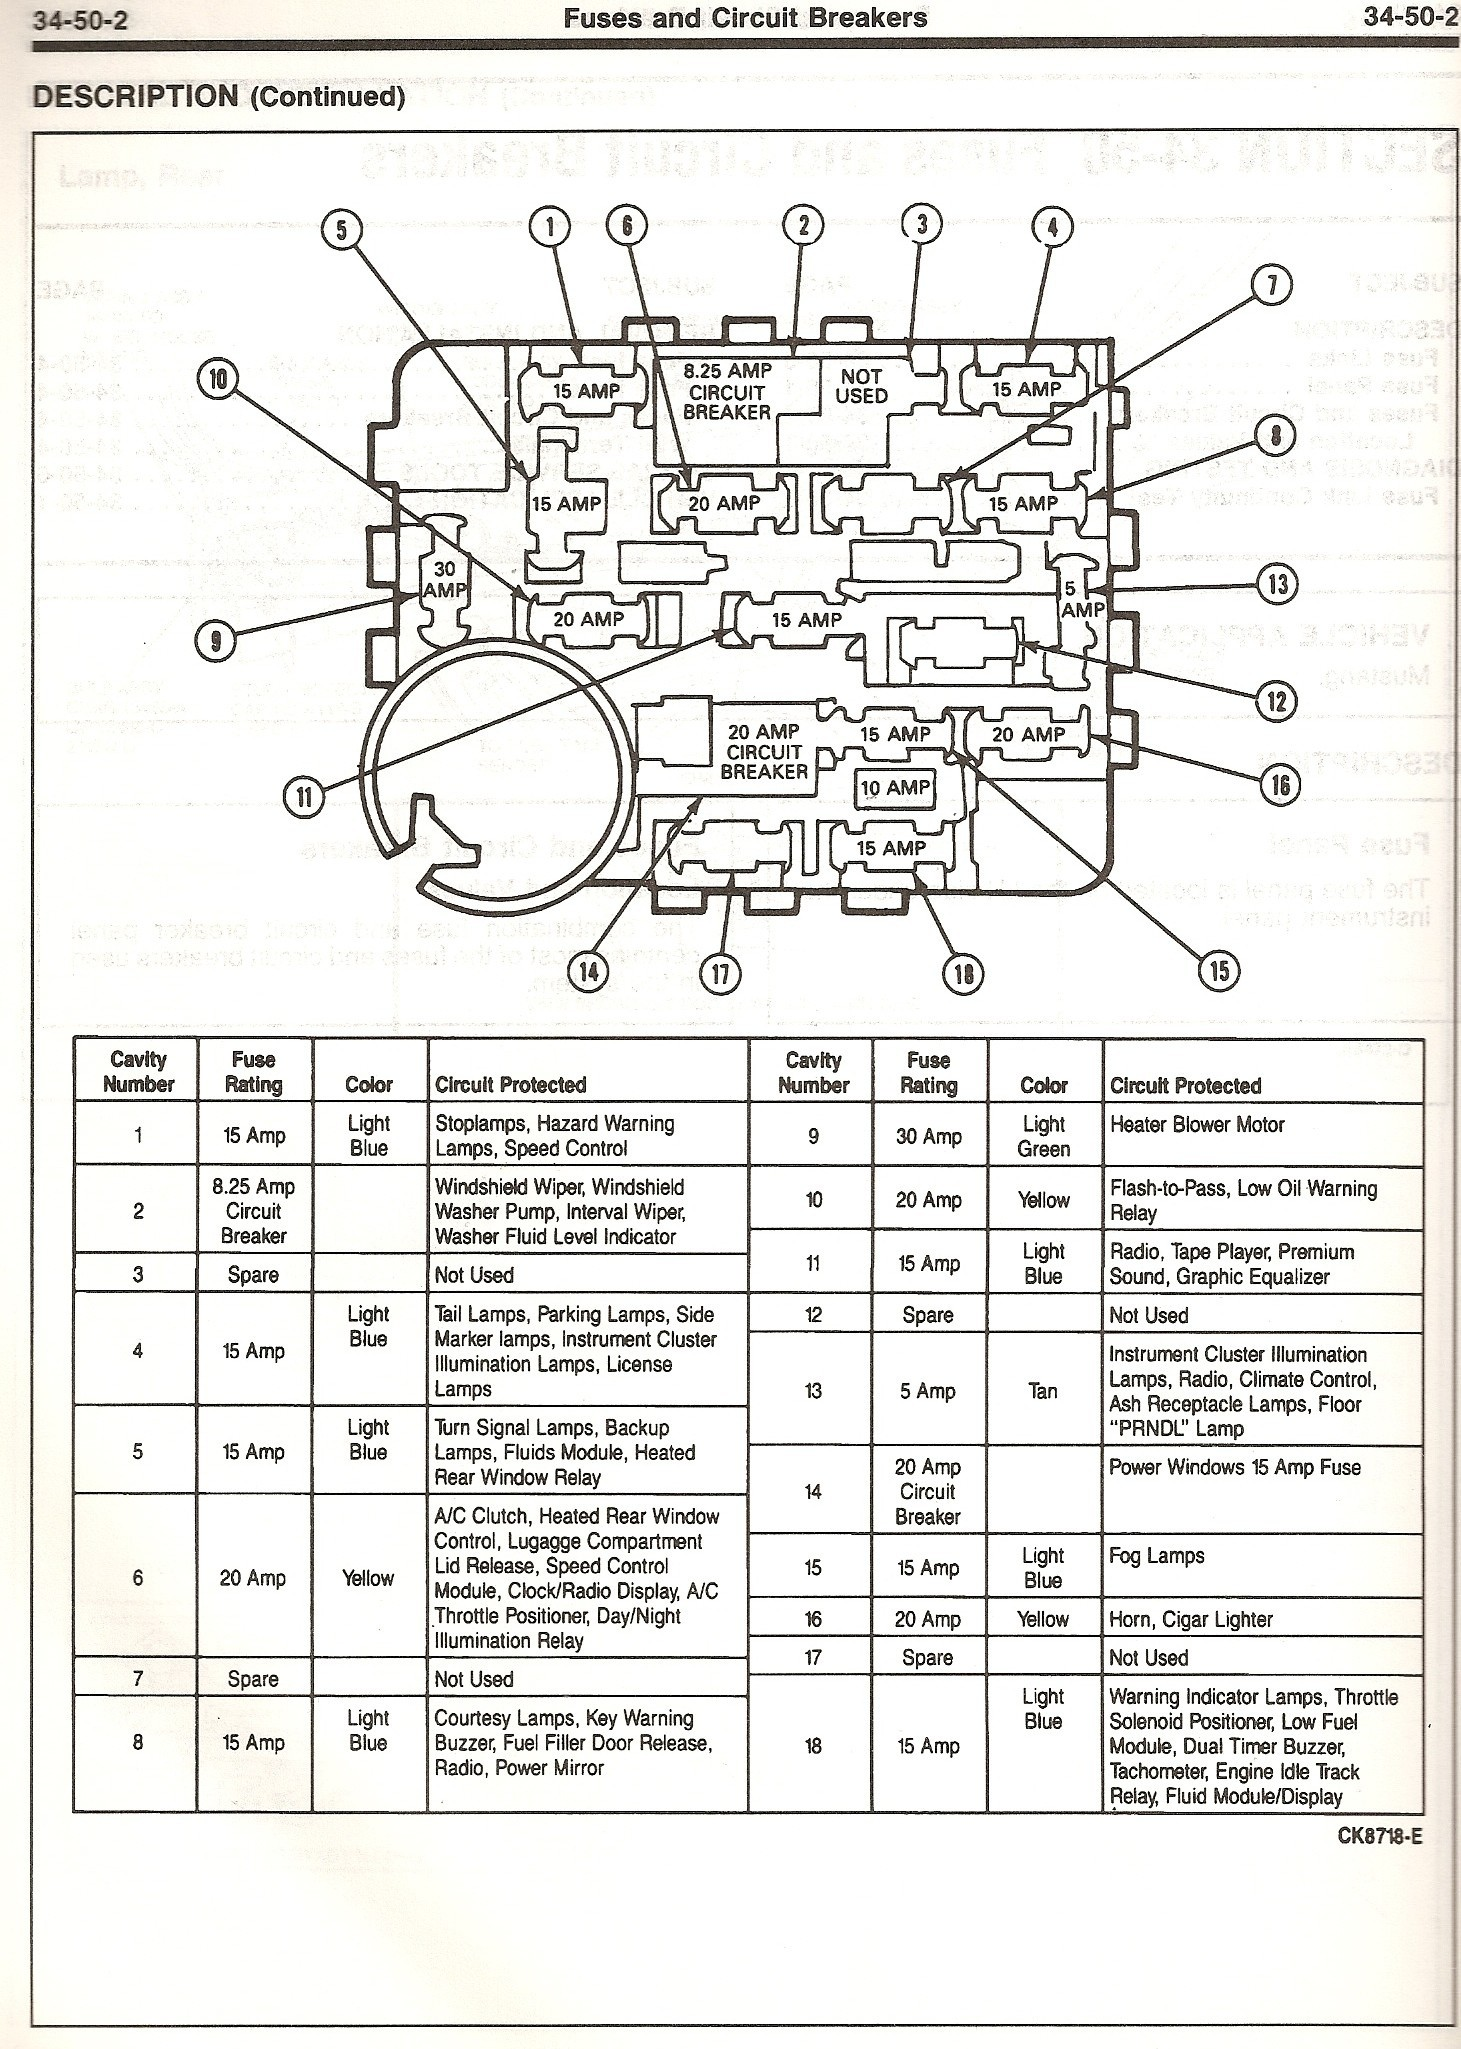 Ford Ranger 4 0 Engine Diagram 2001 ford Ranger Fuse Diagram Wiring Diagram  Of Ford Ranger